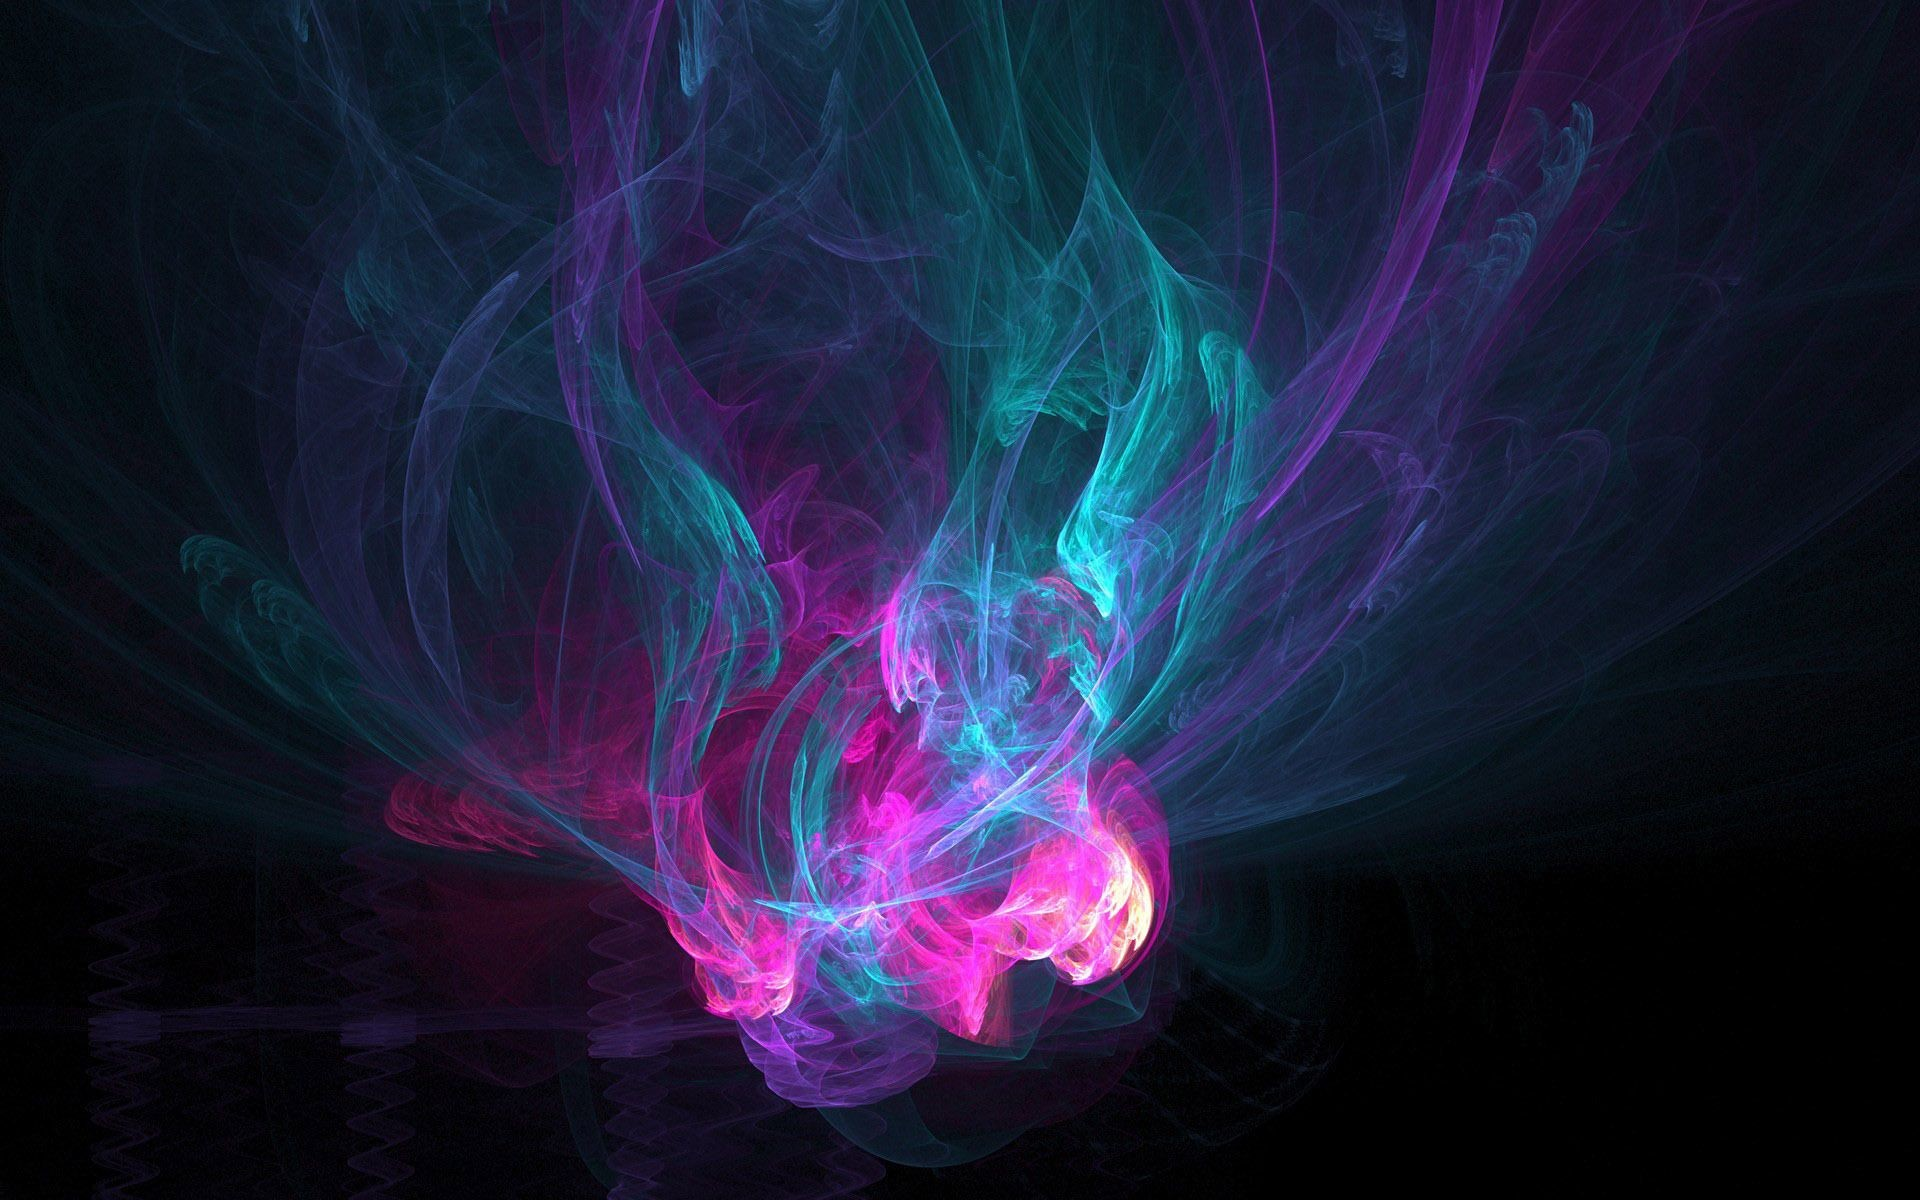 Hd Abstract Wallpaper Neon Smoke 62 Images Dodowallpaper